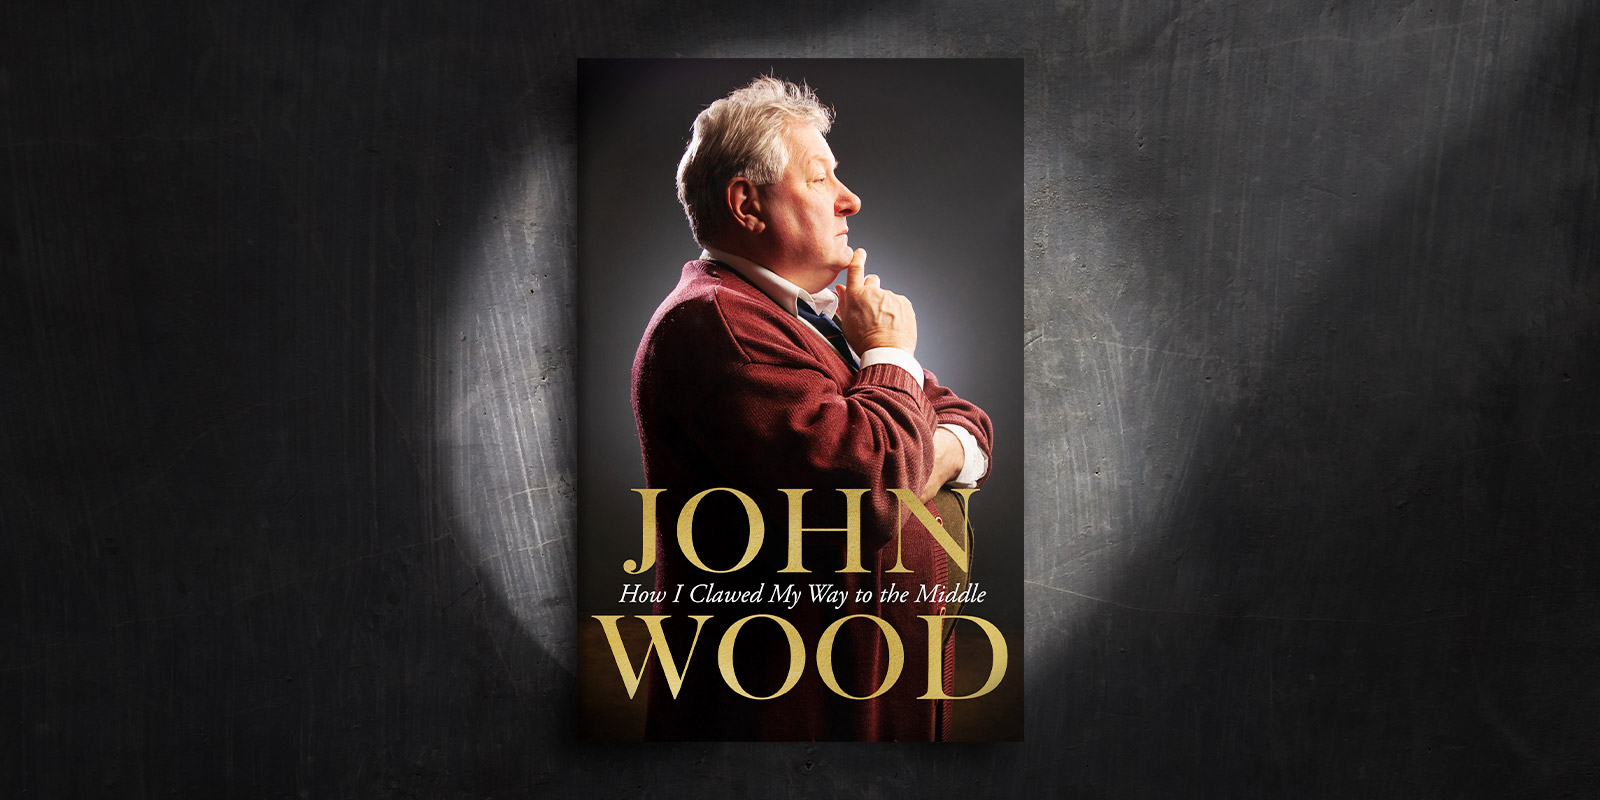 John Wood opens up about his life